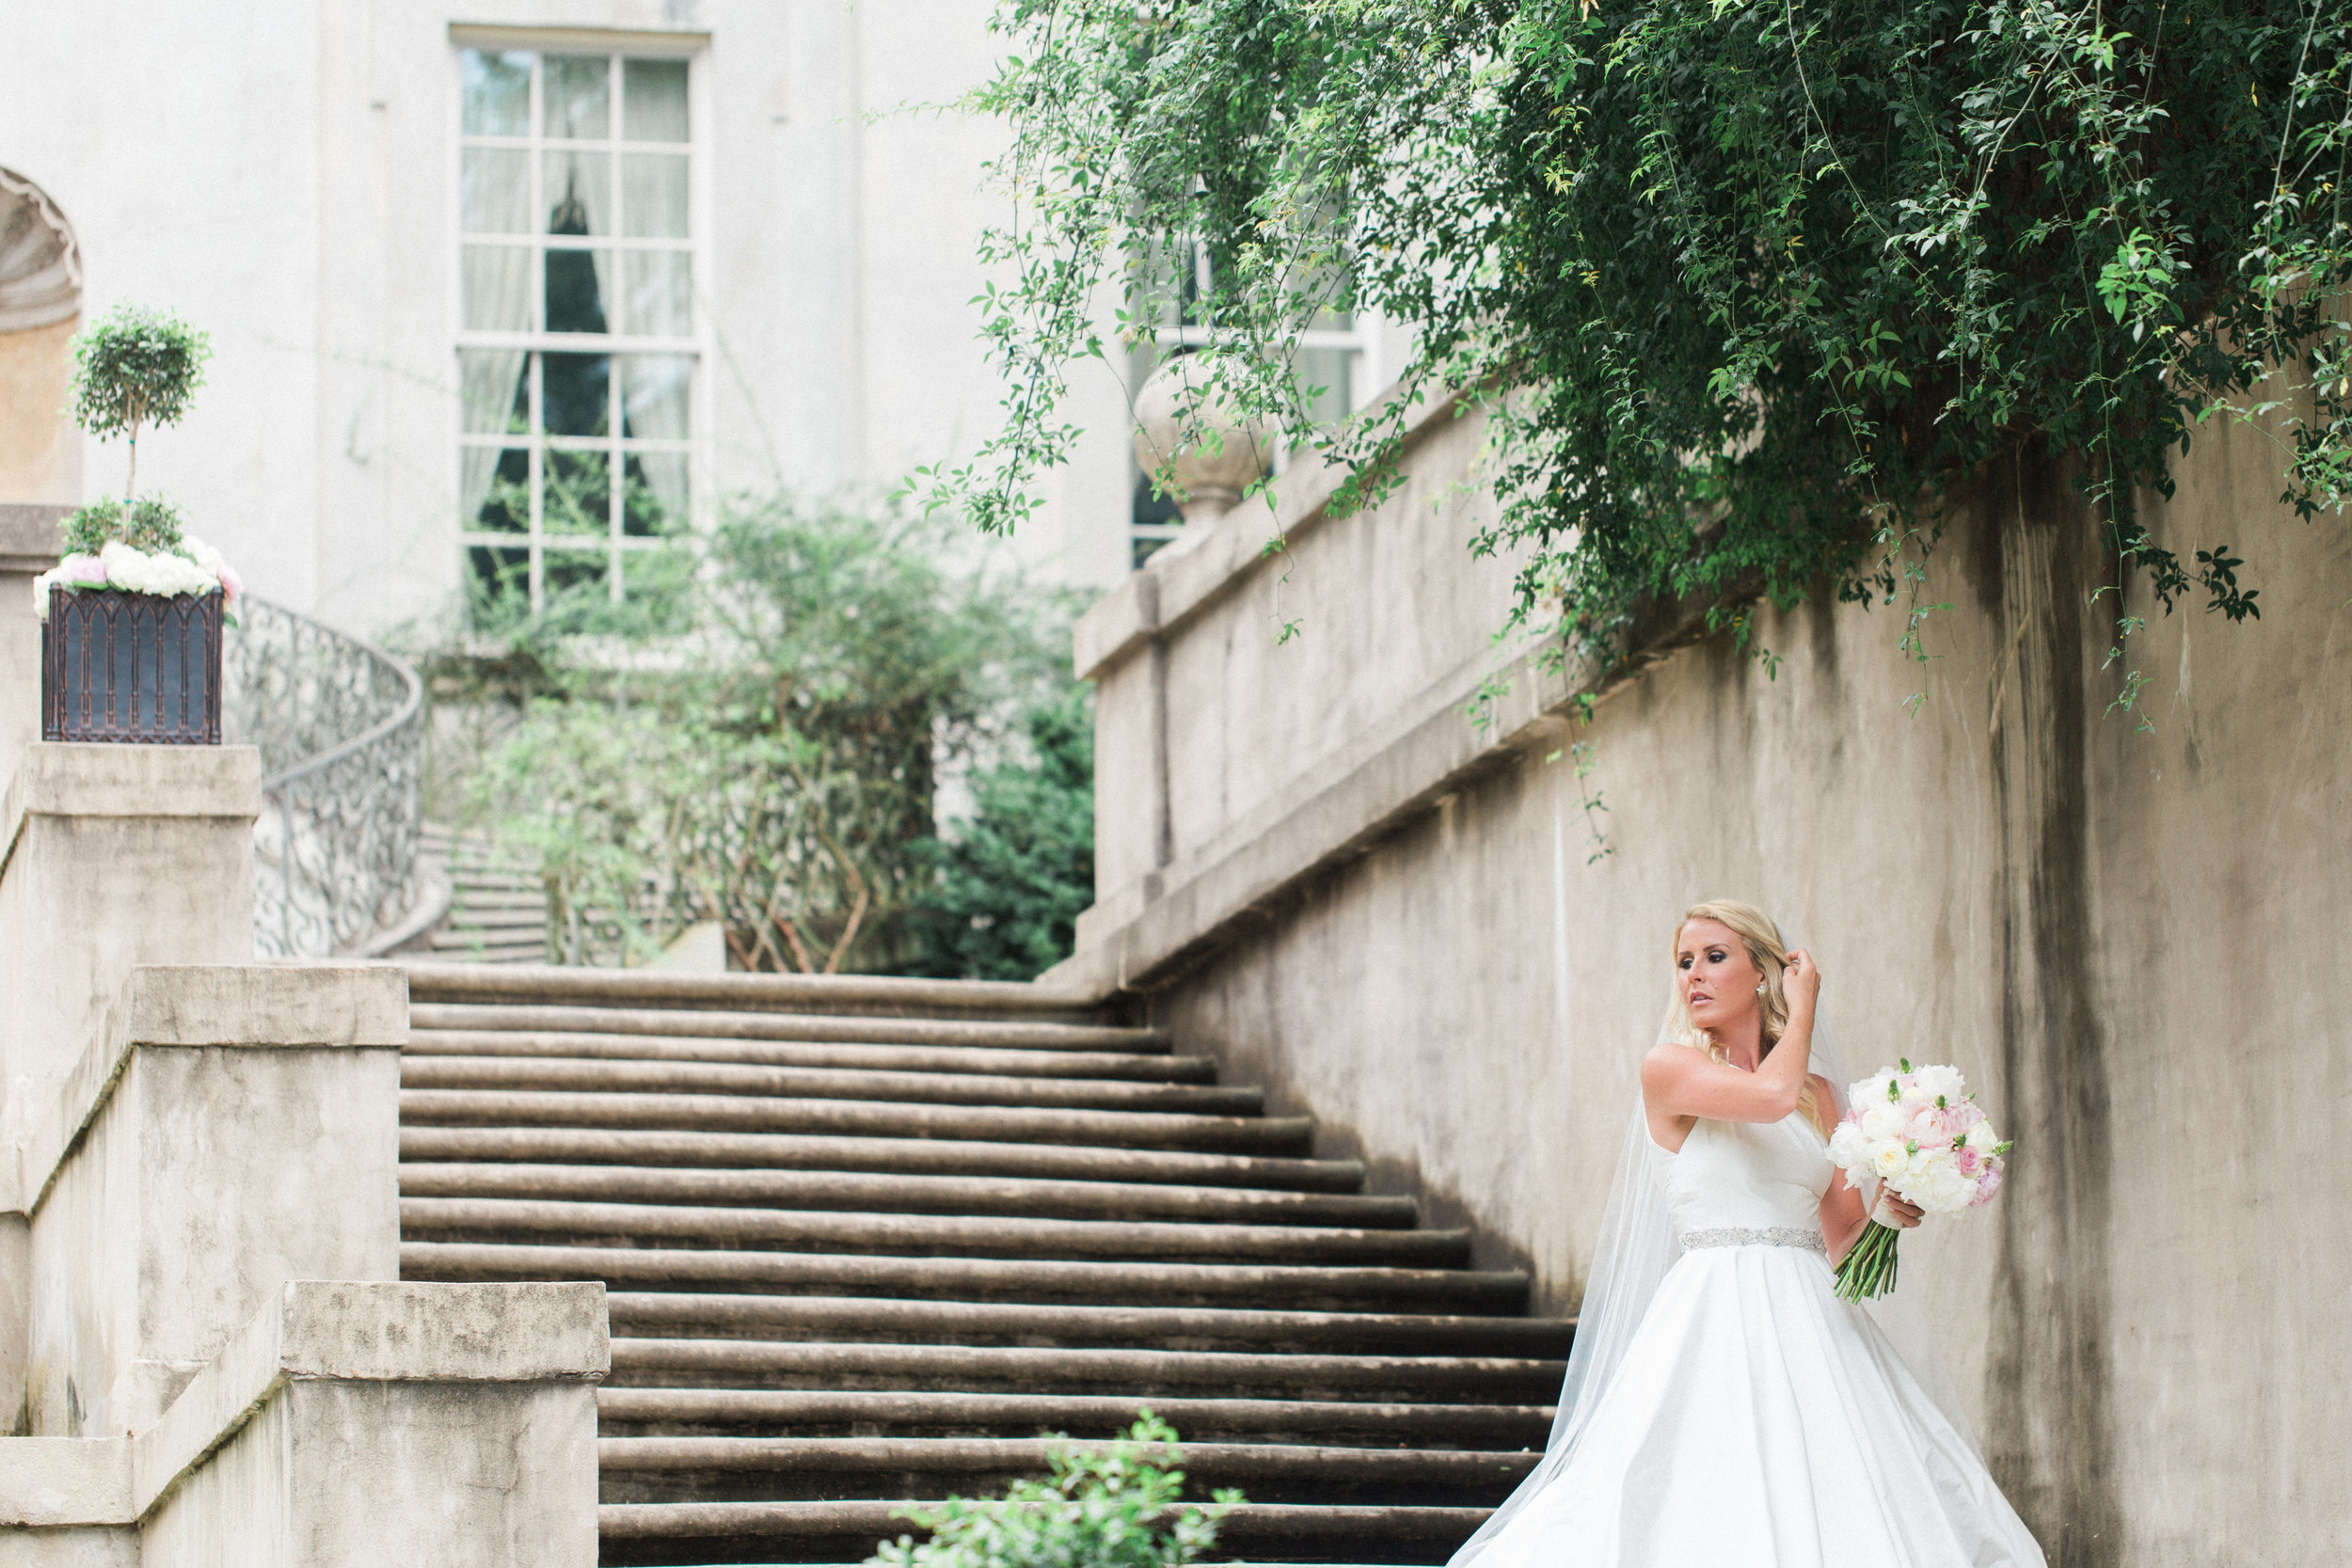 Atlanta Wedding Photographer - Krista Turner Photography - Swan House Wedding (2).jpg